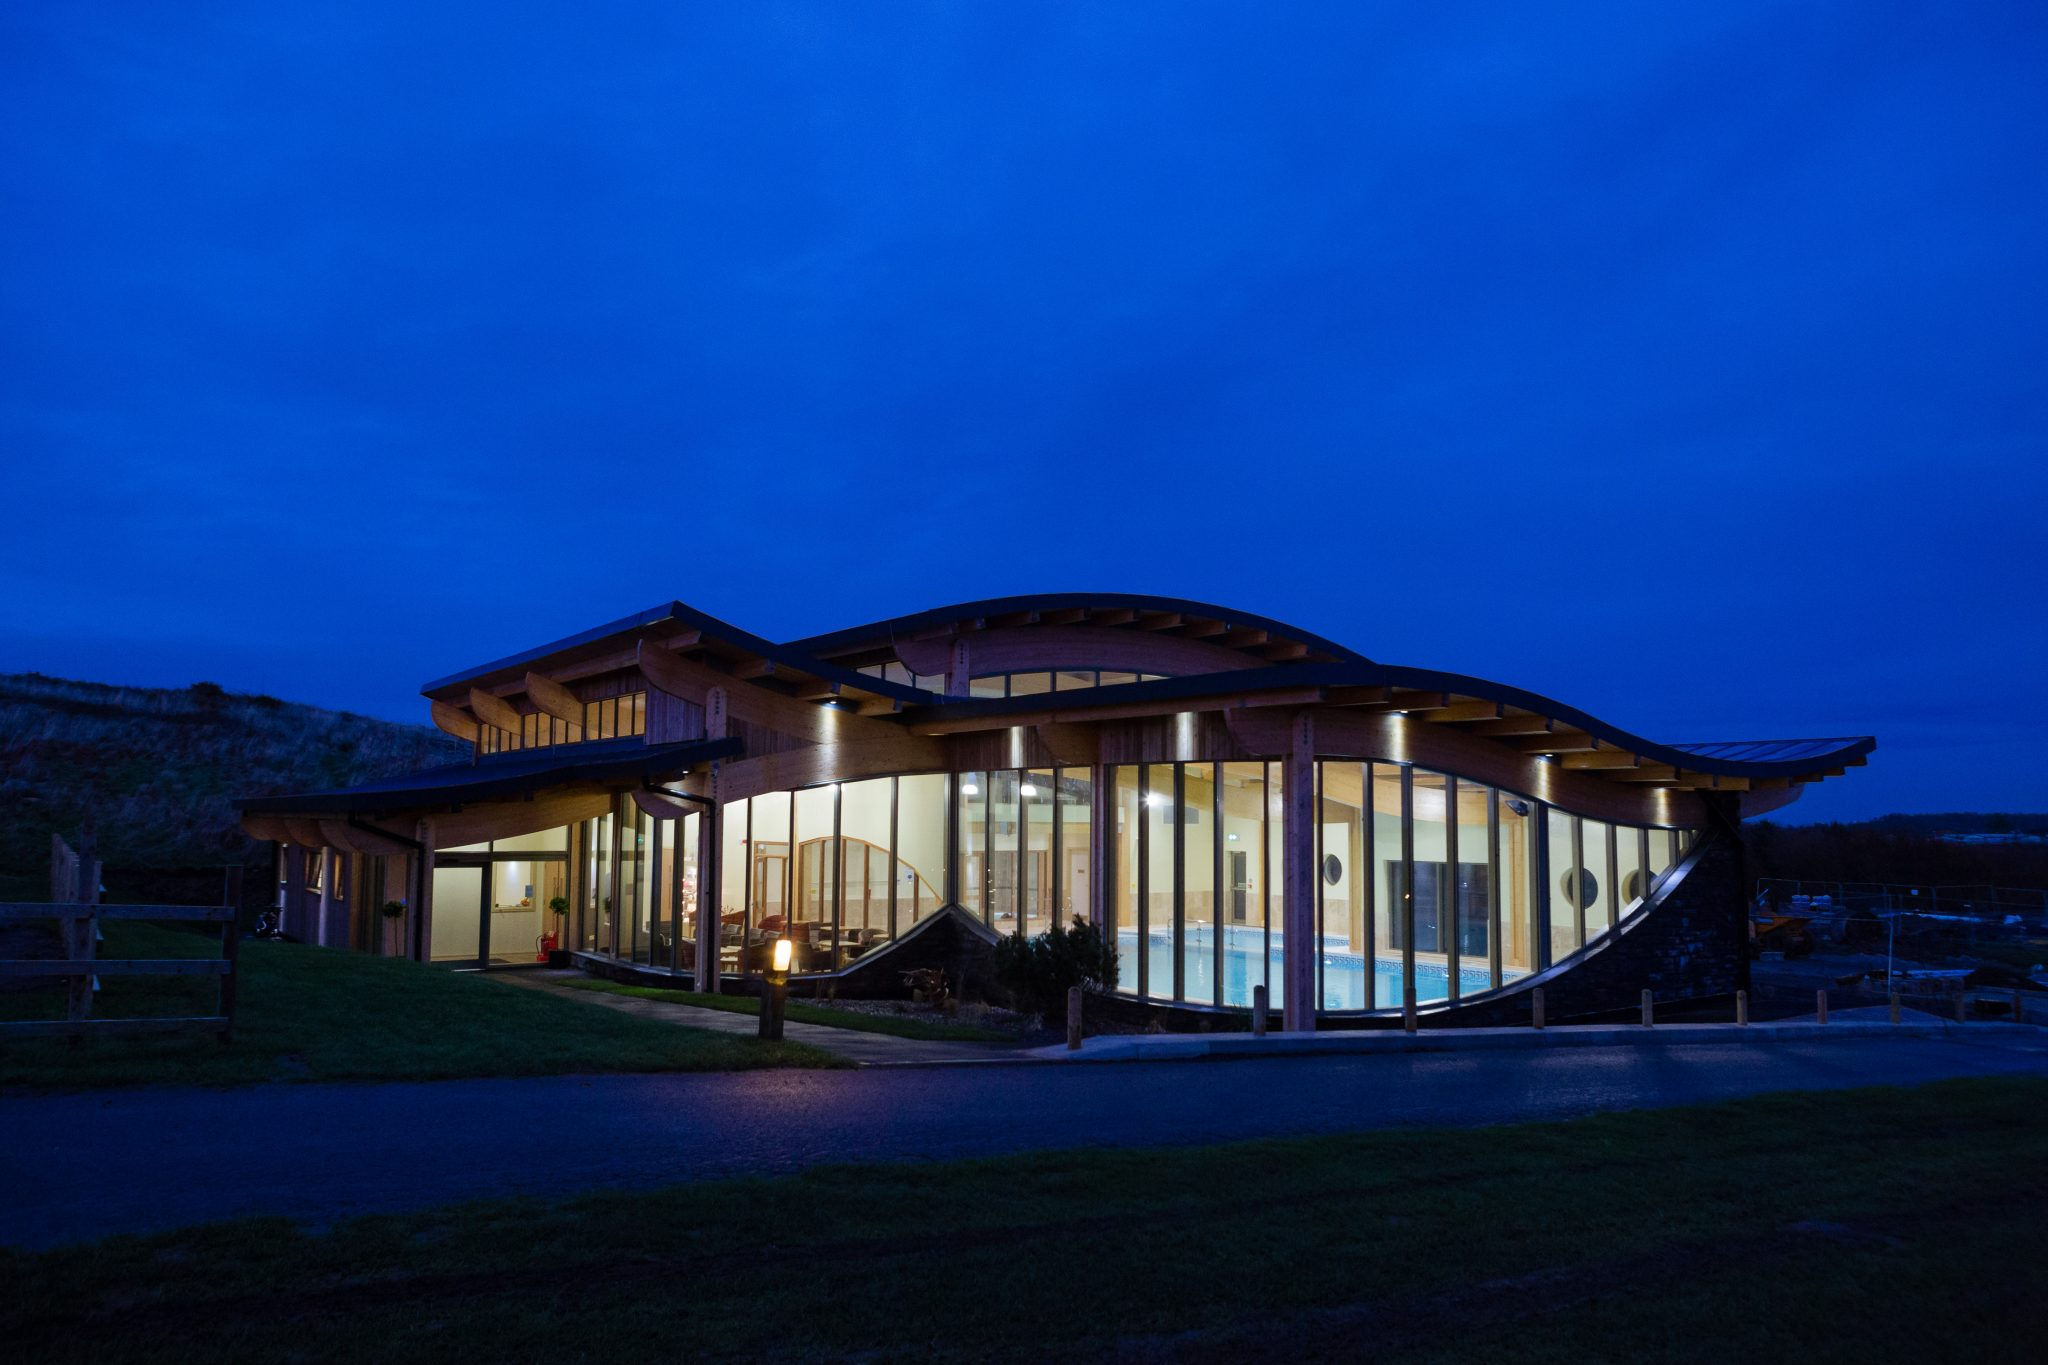 Exterior of Silver Bay spa at night